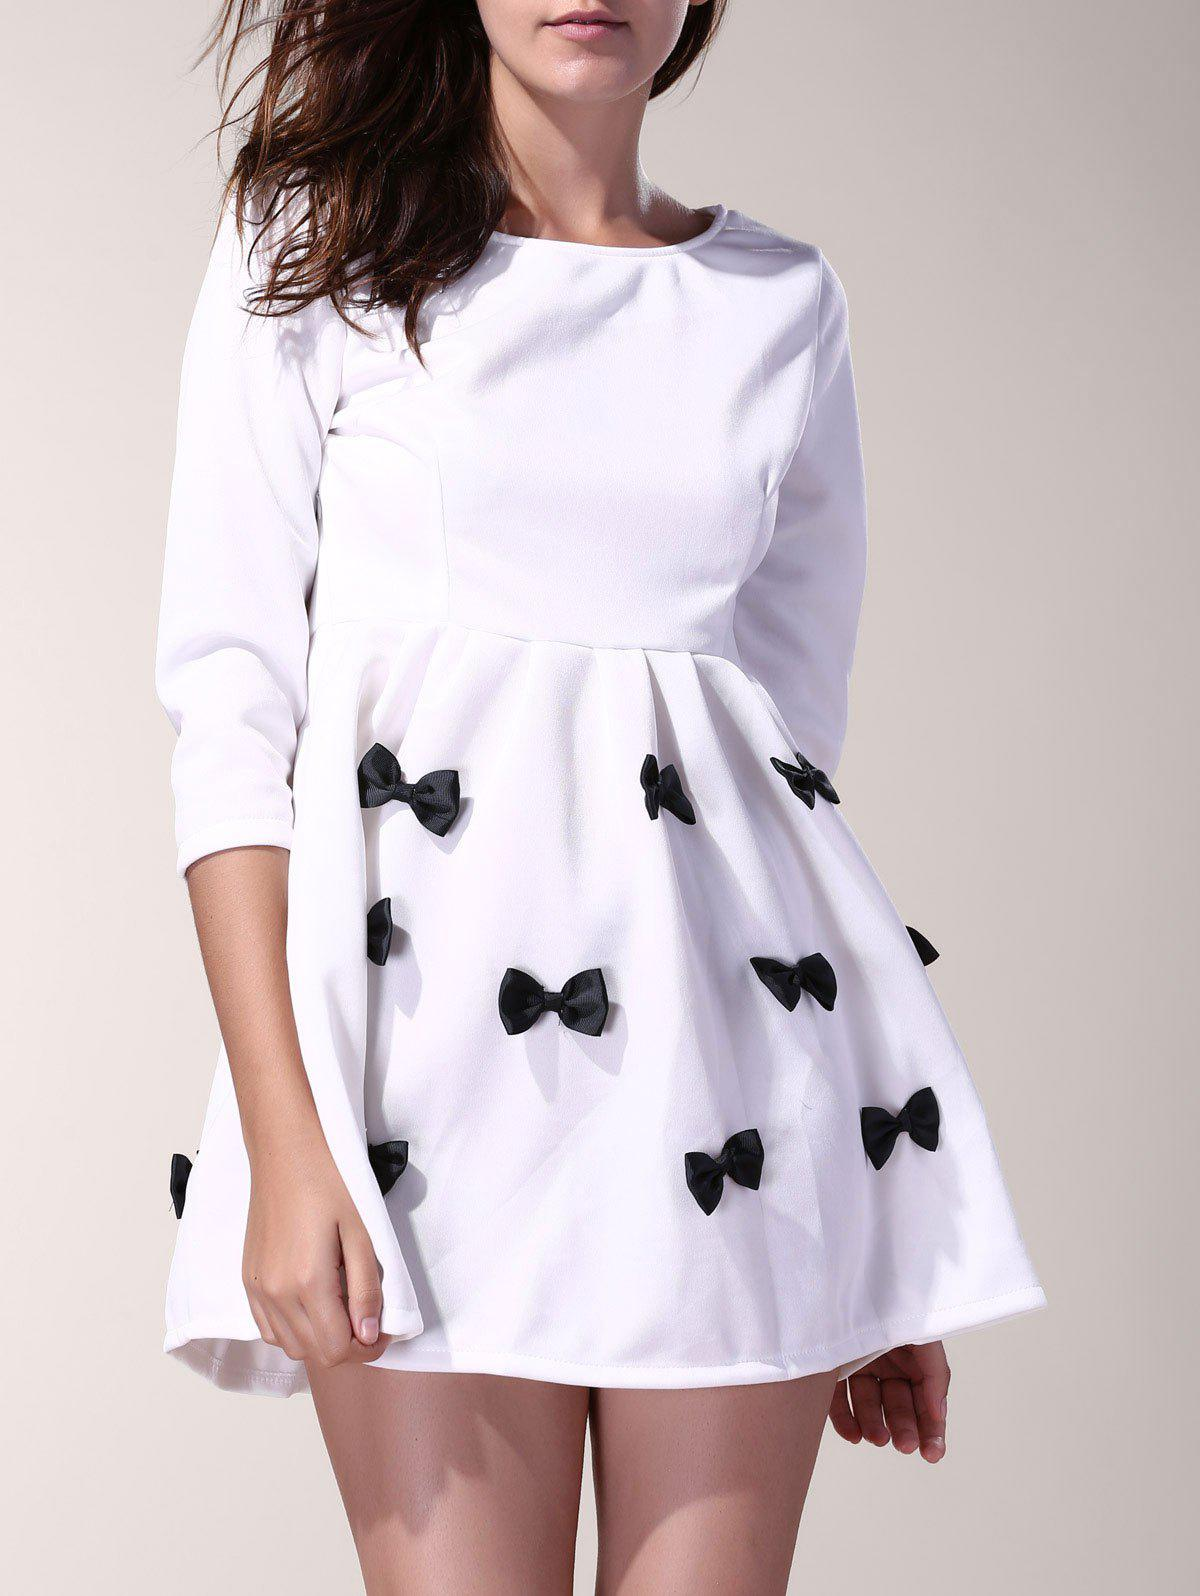 3/4 Sleeve Scoop Neck Bowknot Decorated Dress For Women - WHITE S